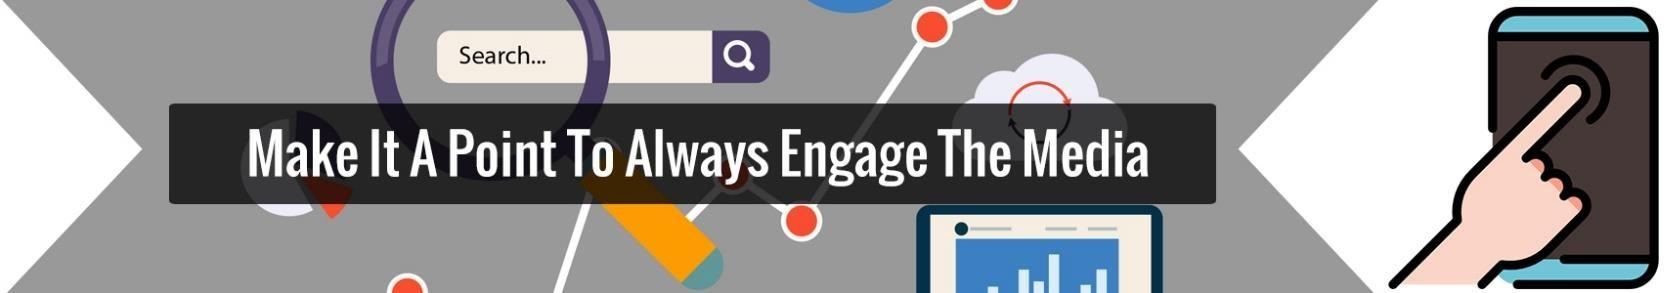 how to boost local seo by engaging the media